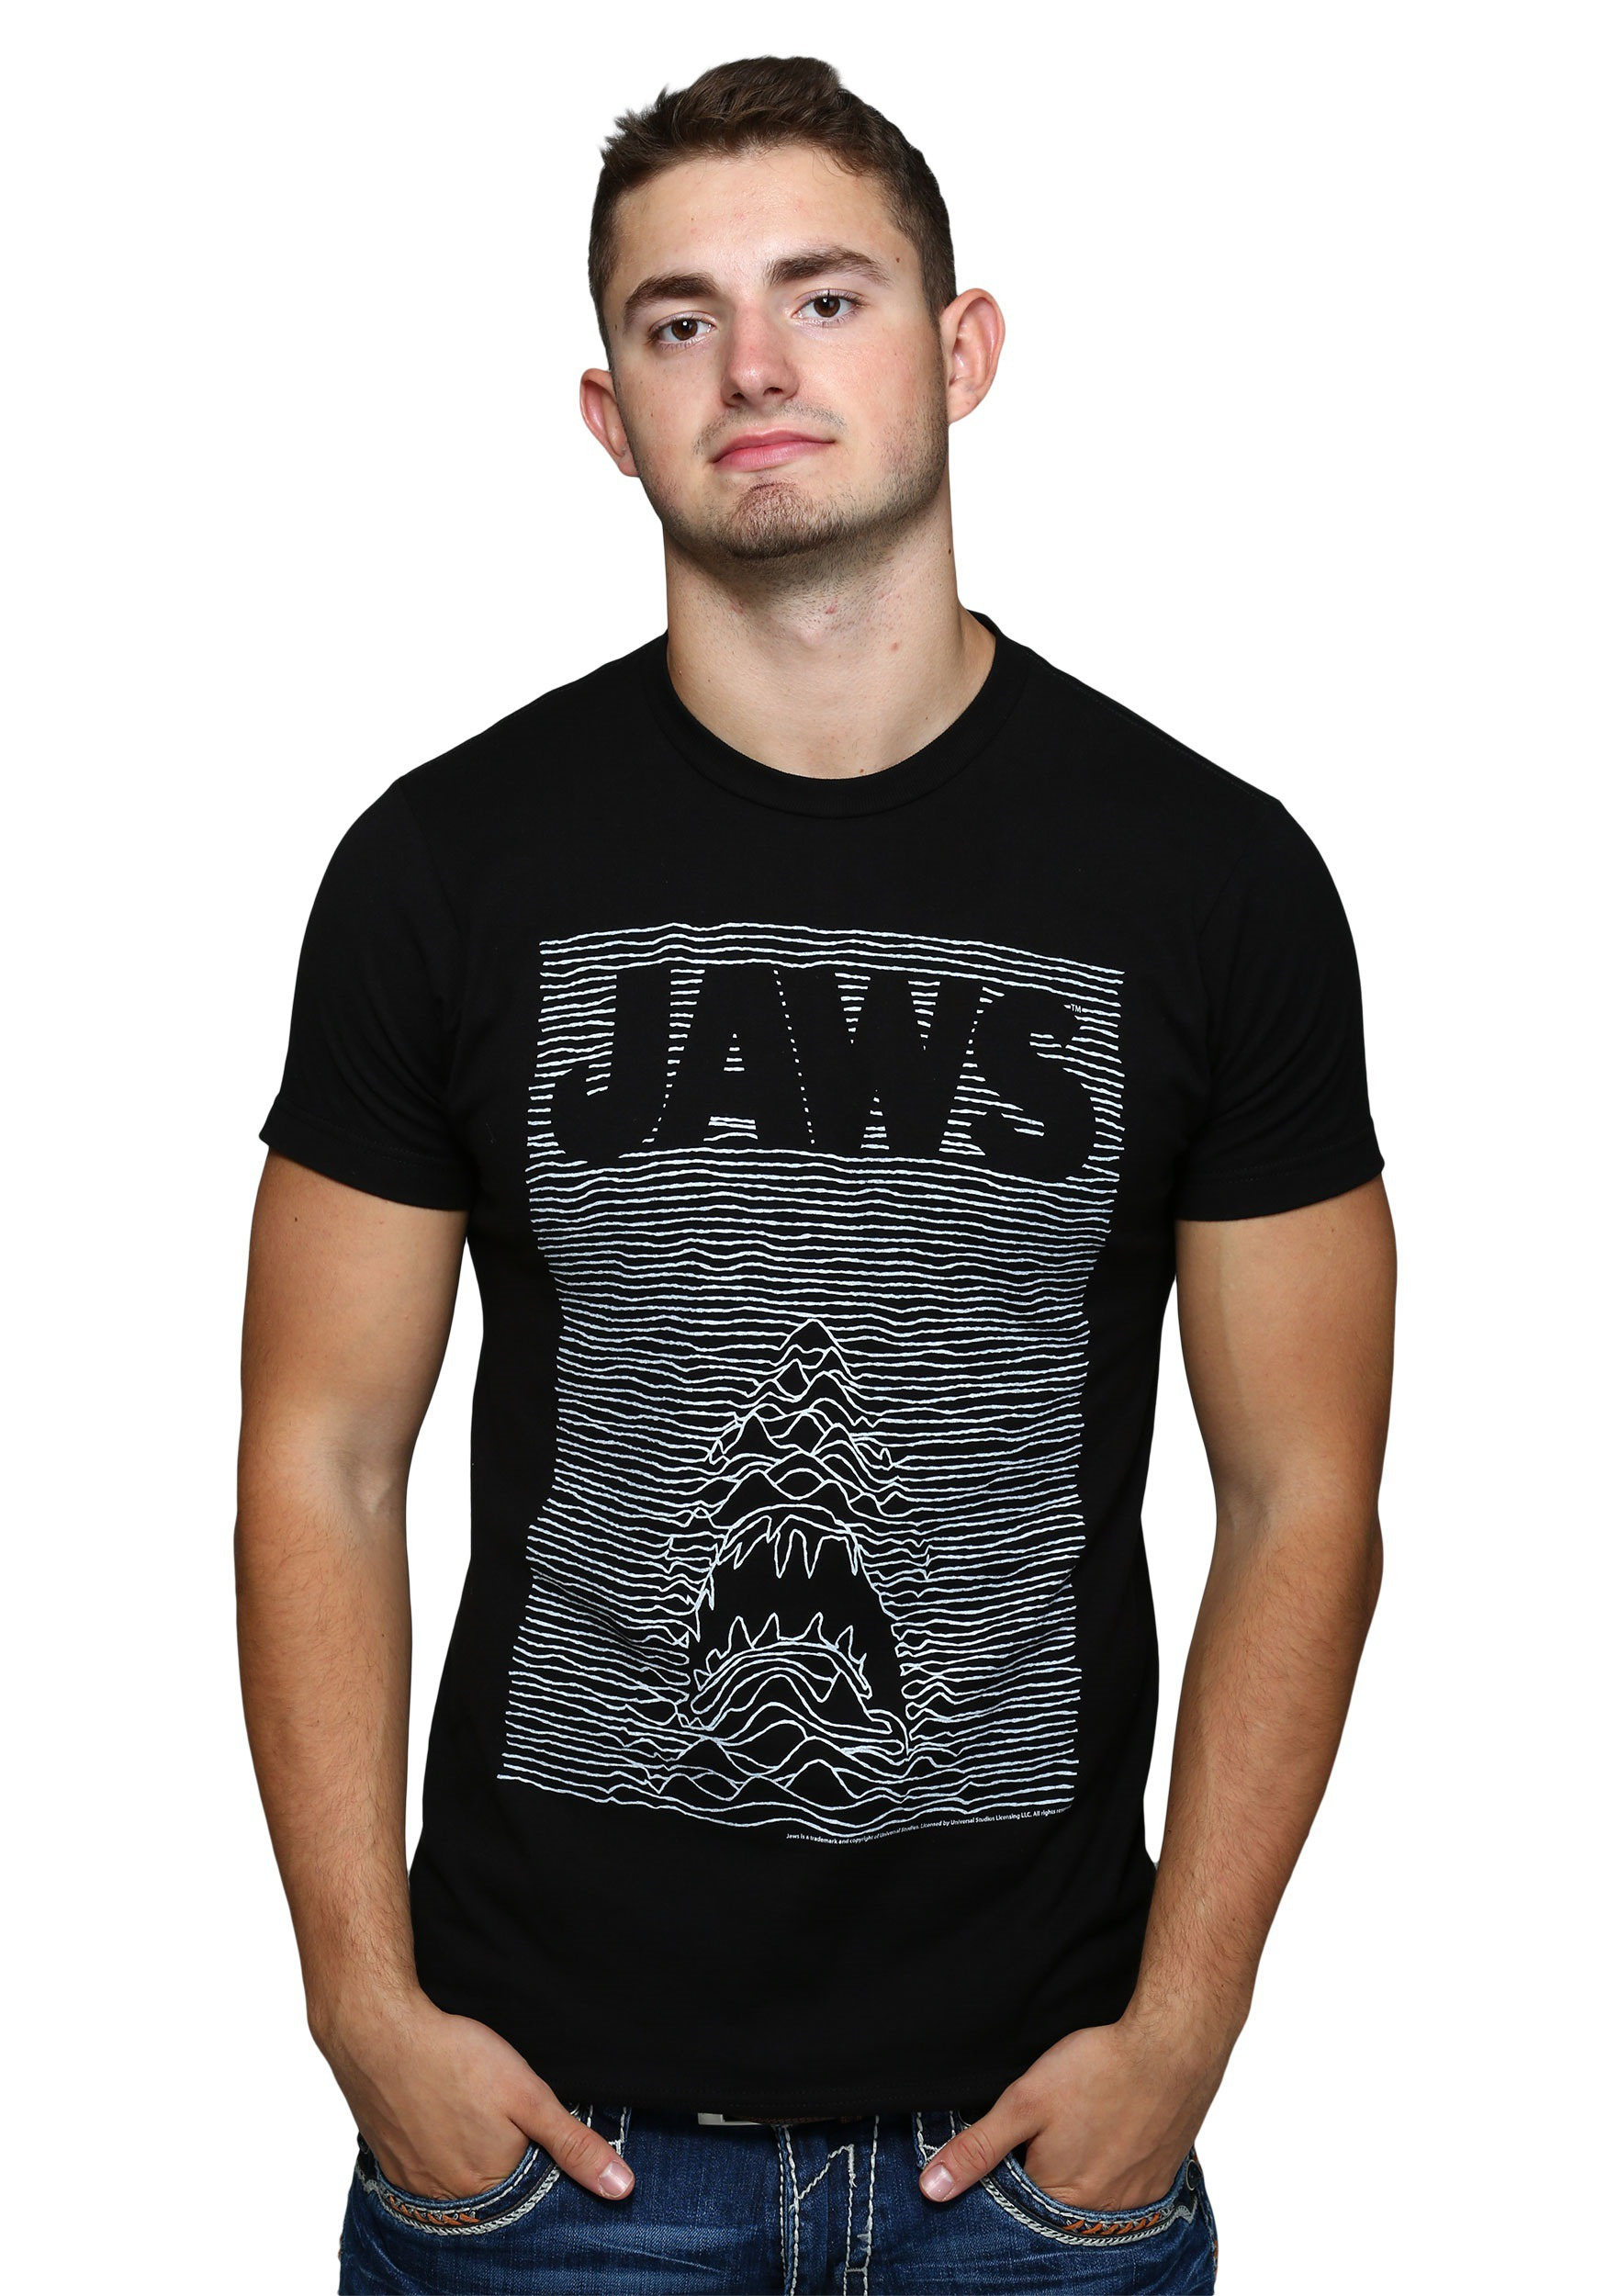 e4c61d4f1 Jaw Division Mens Shirt